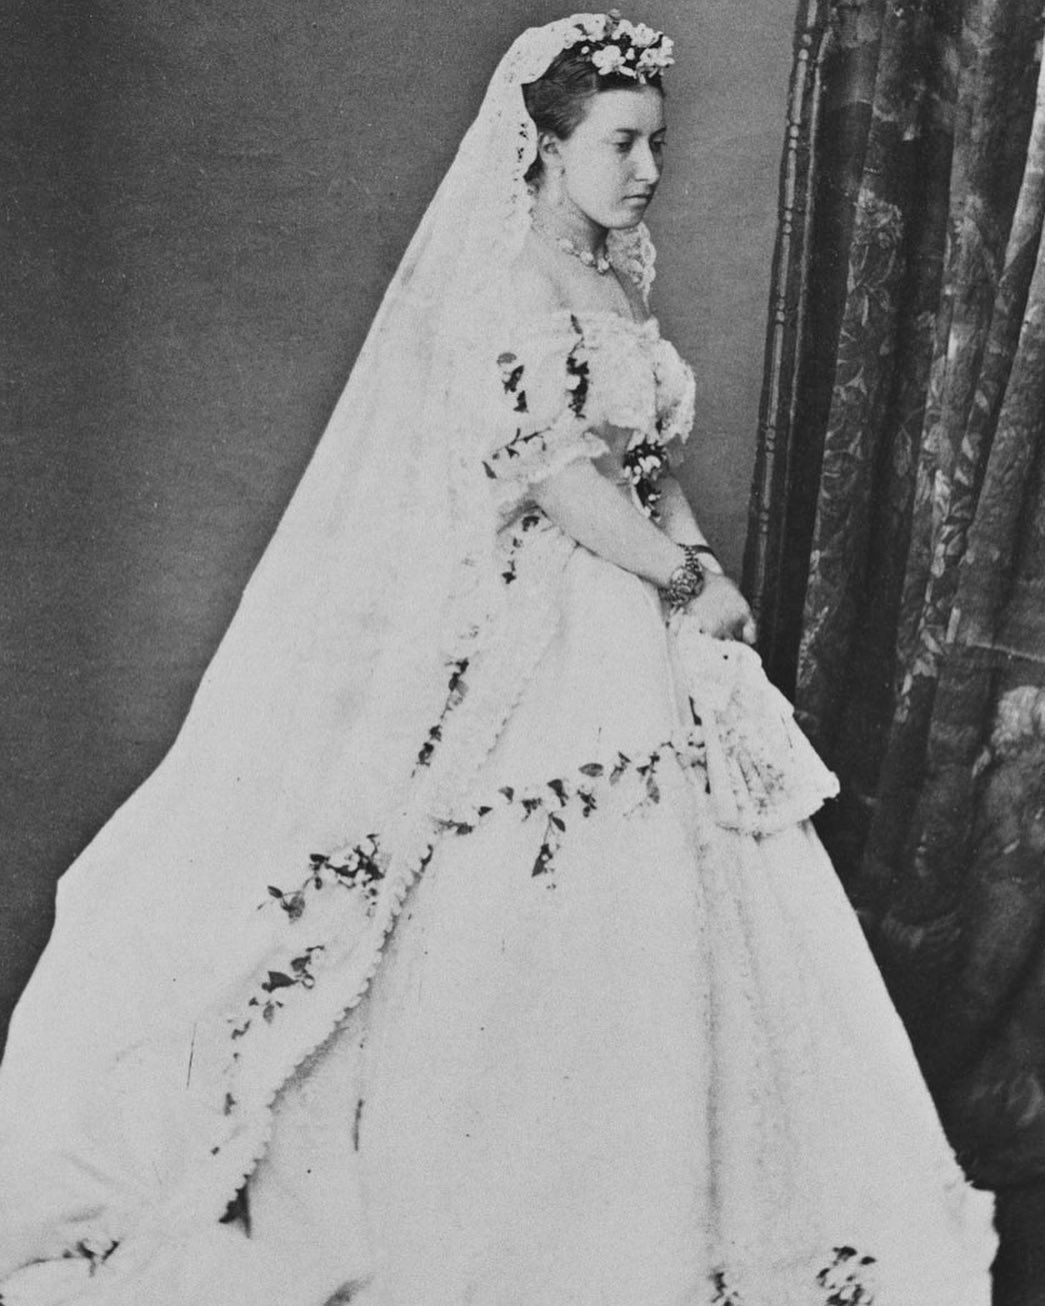 Princess Helena The Fifth Child And Third Daughter Of Queen Victoria Wore A Dress Of White Satin Featuring Wedding Dresses Queen Victoria Royal Wedding Dress [ 1306 x 1045 Pixel ]